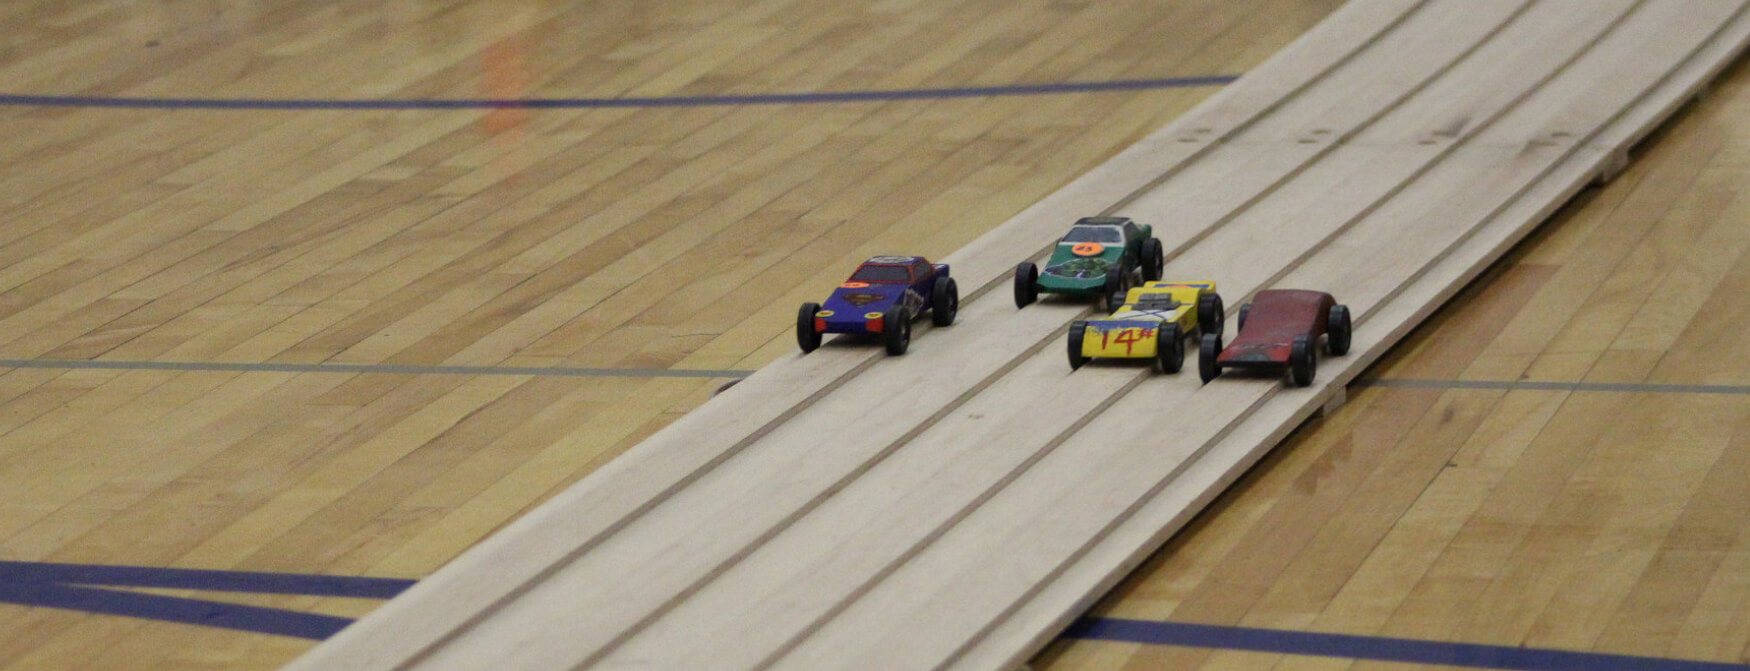 Pinewood Derby race